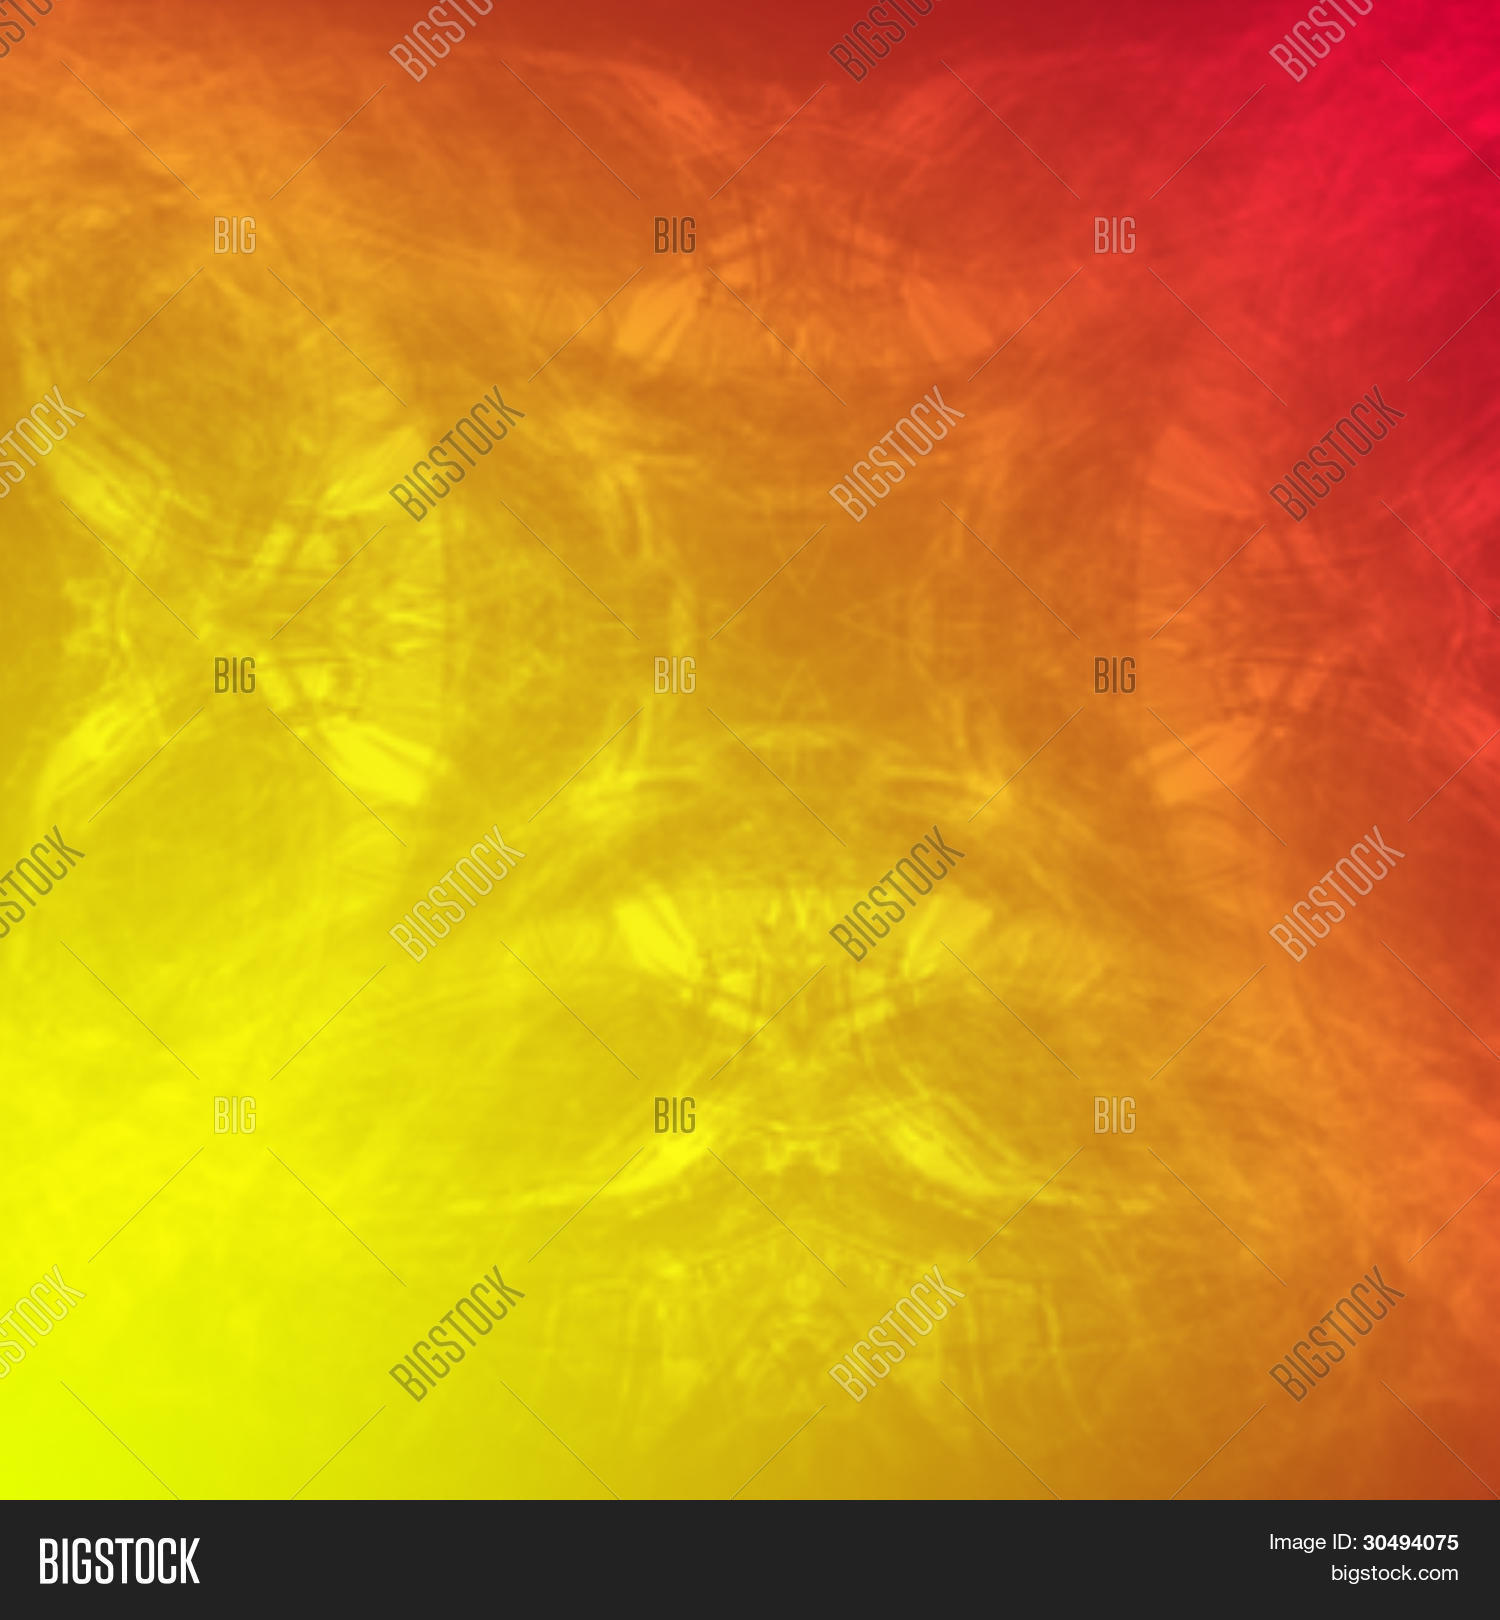 Yellow Maroon Color Image Photo Free Trial Bigstock